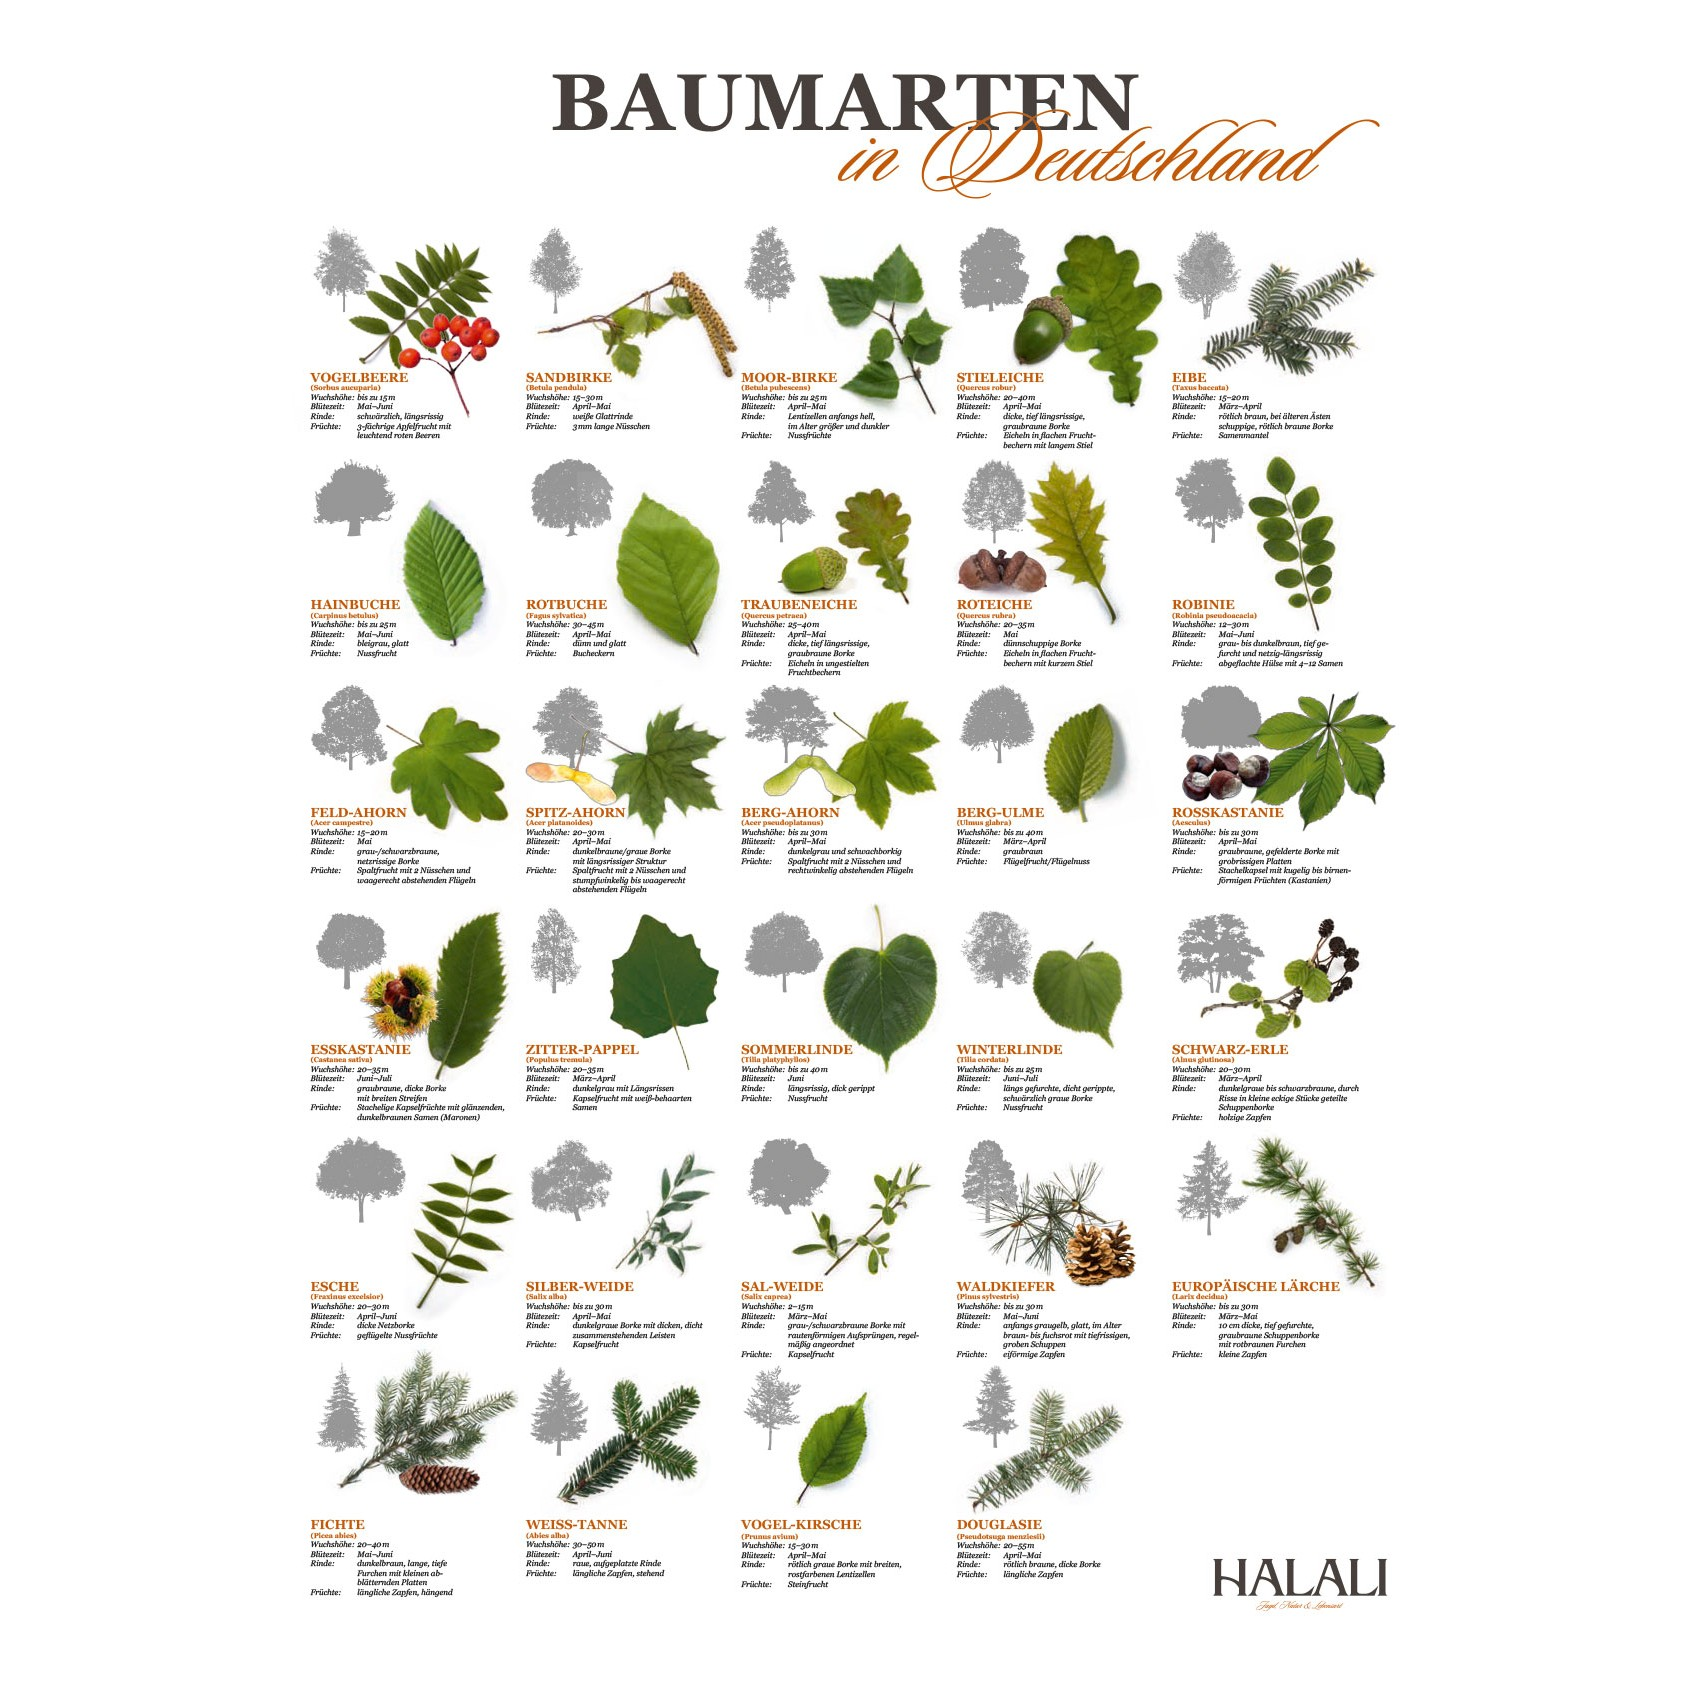 das halali poster baumarten in deutschland poster. Black Bedroom Furniture Sets. Home Design Ideas